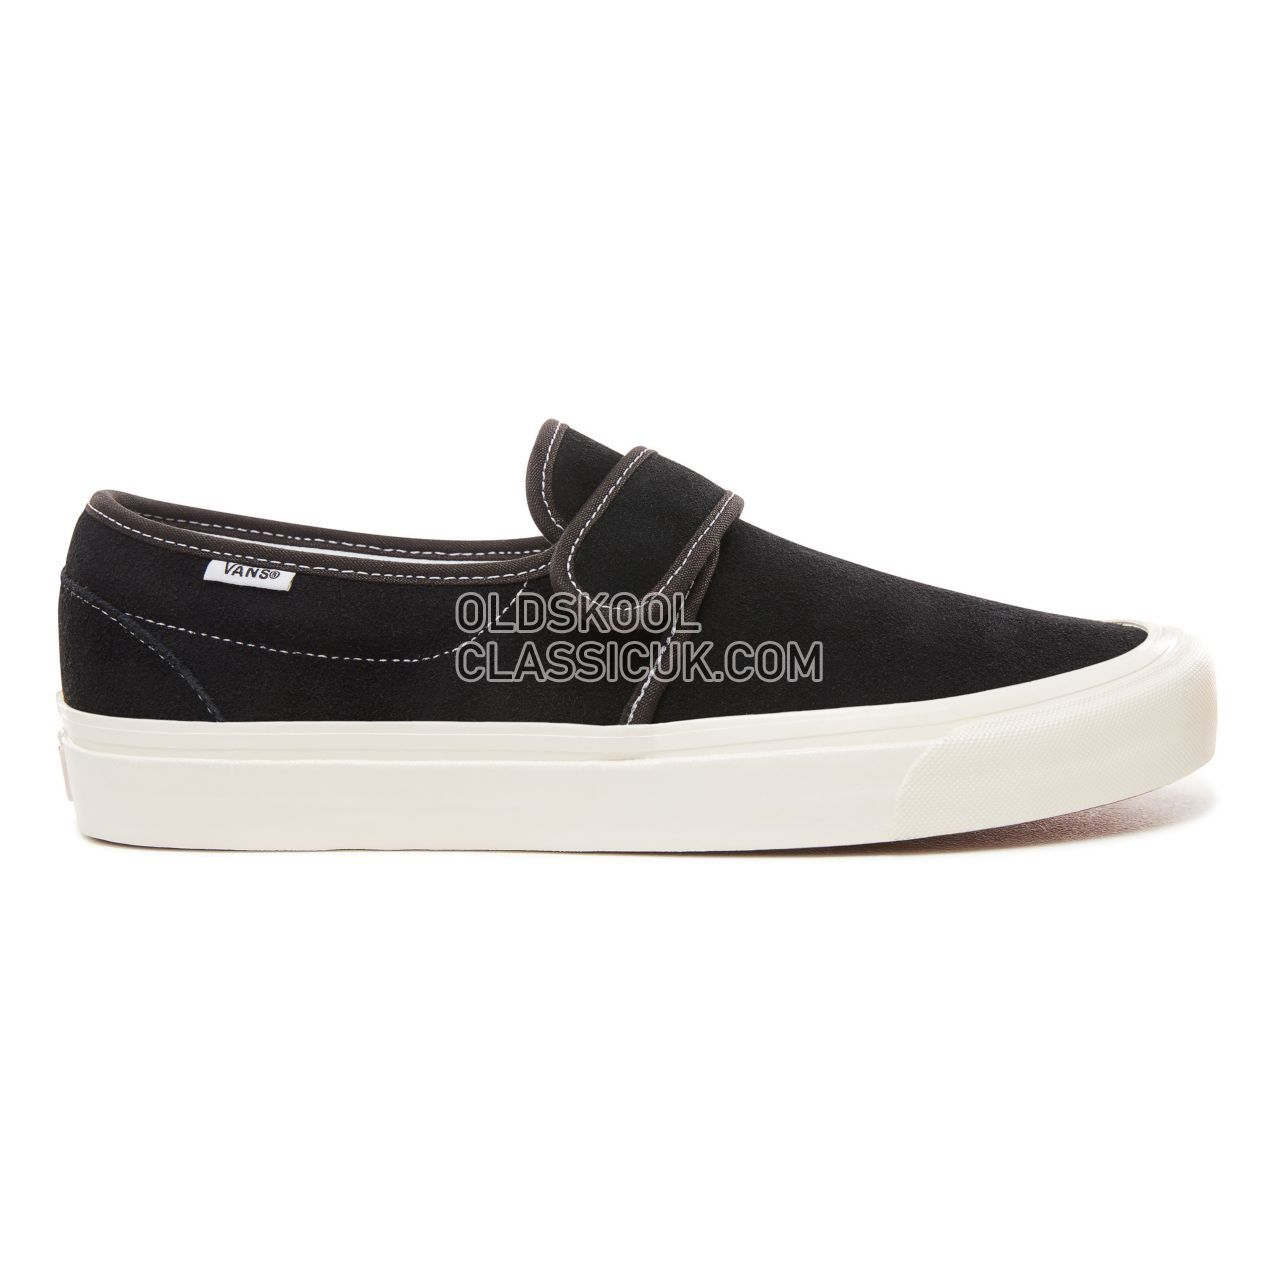 Vans Anaheim Factory Slip-On 47 V Dx Sneakers Mens (Anaheim Factory) Og Black/Suede VN0A3MVAUL1 Shoes